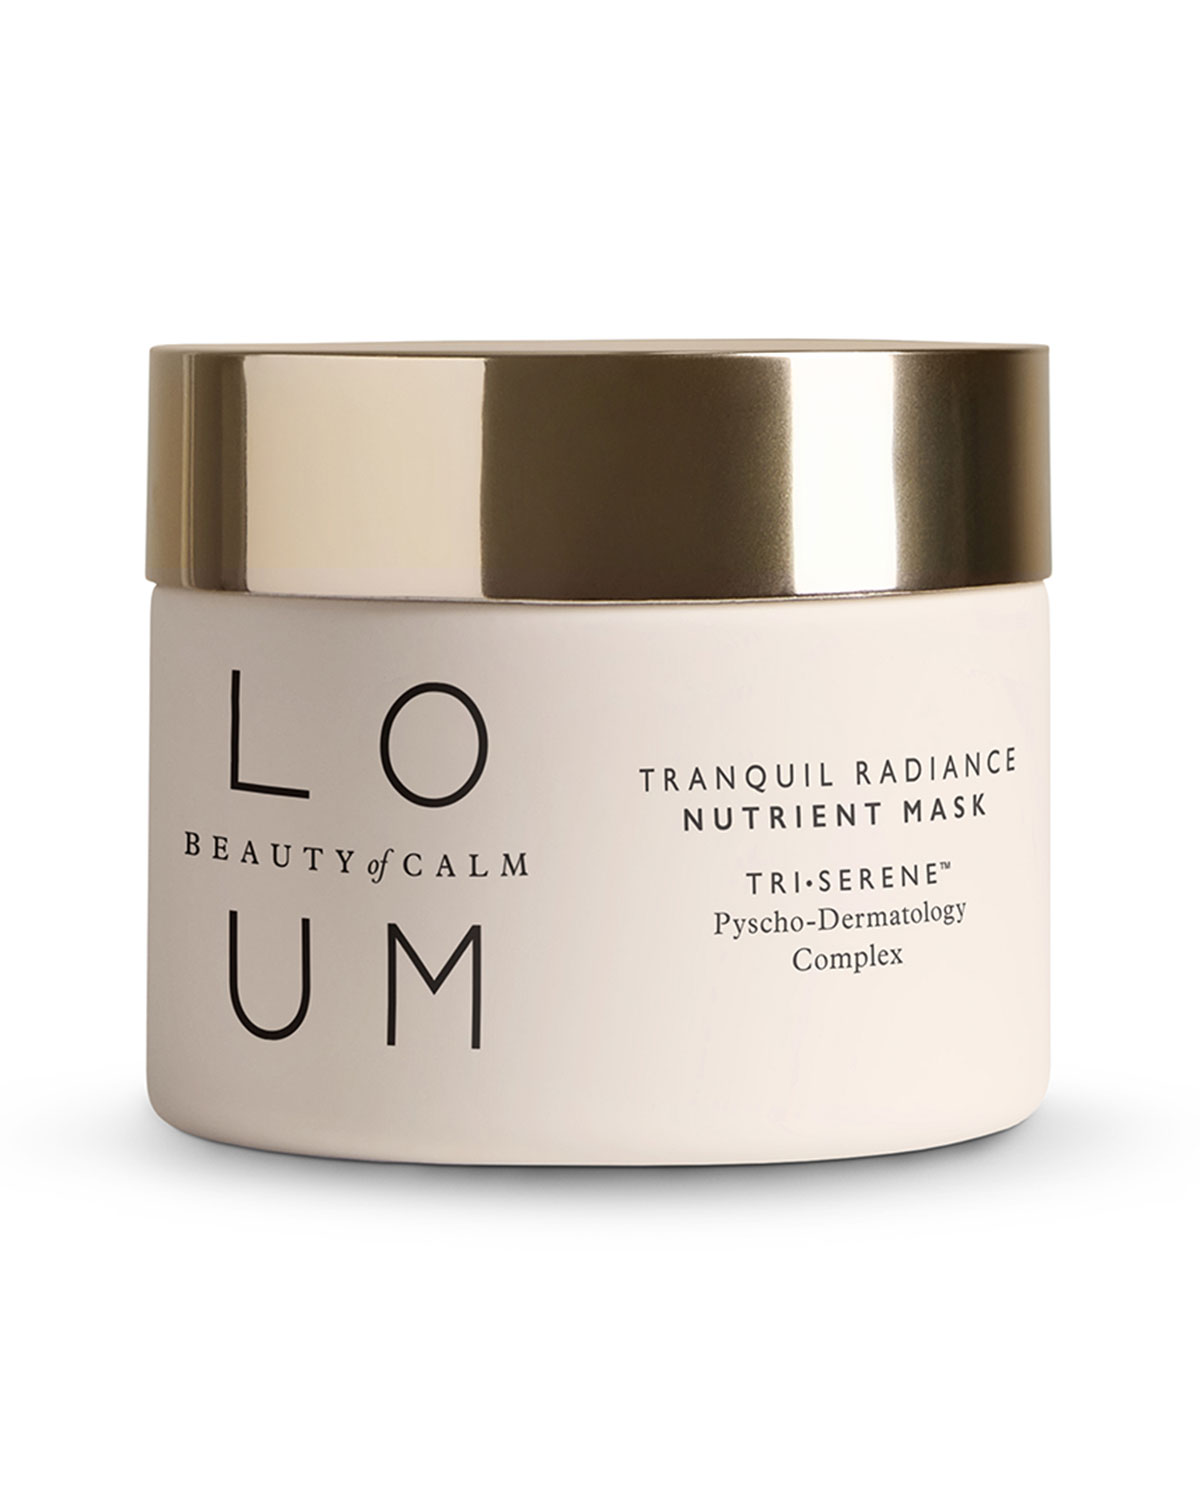 1.7 oz. Tranquil Radiance Nutrient Mask